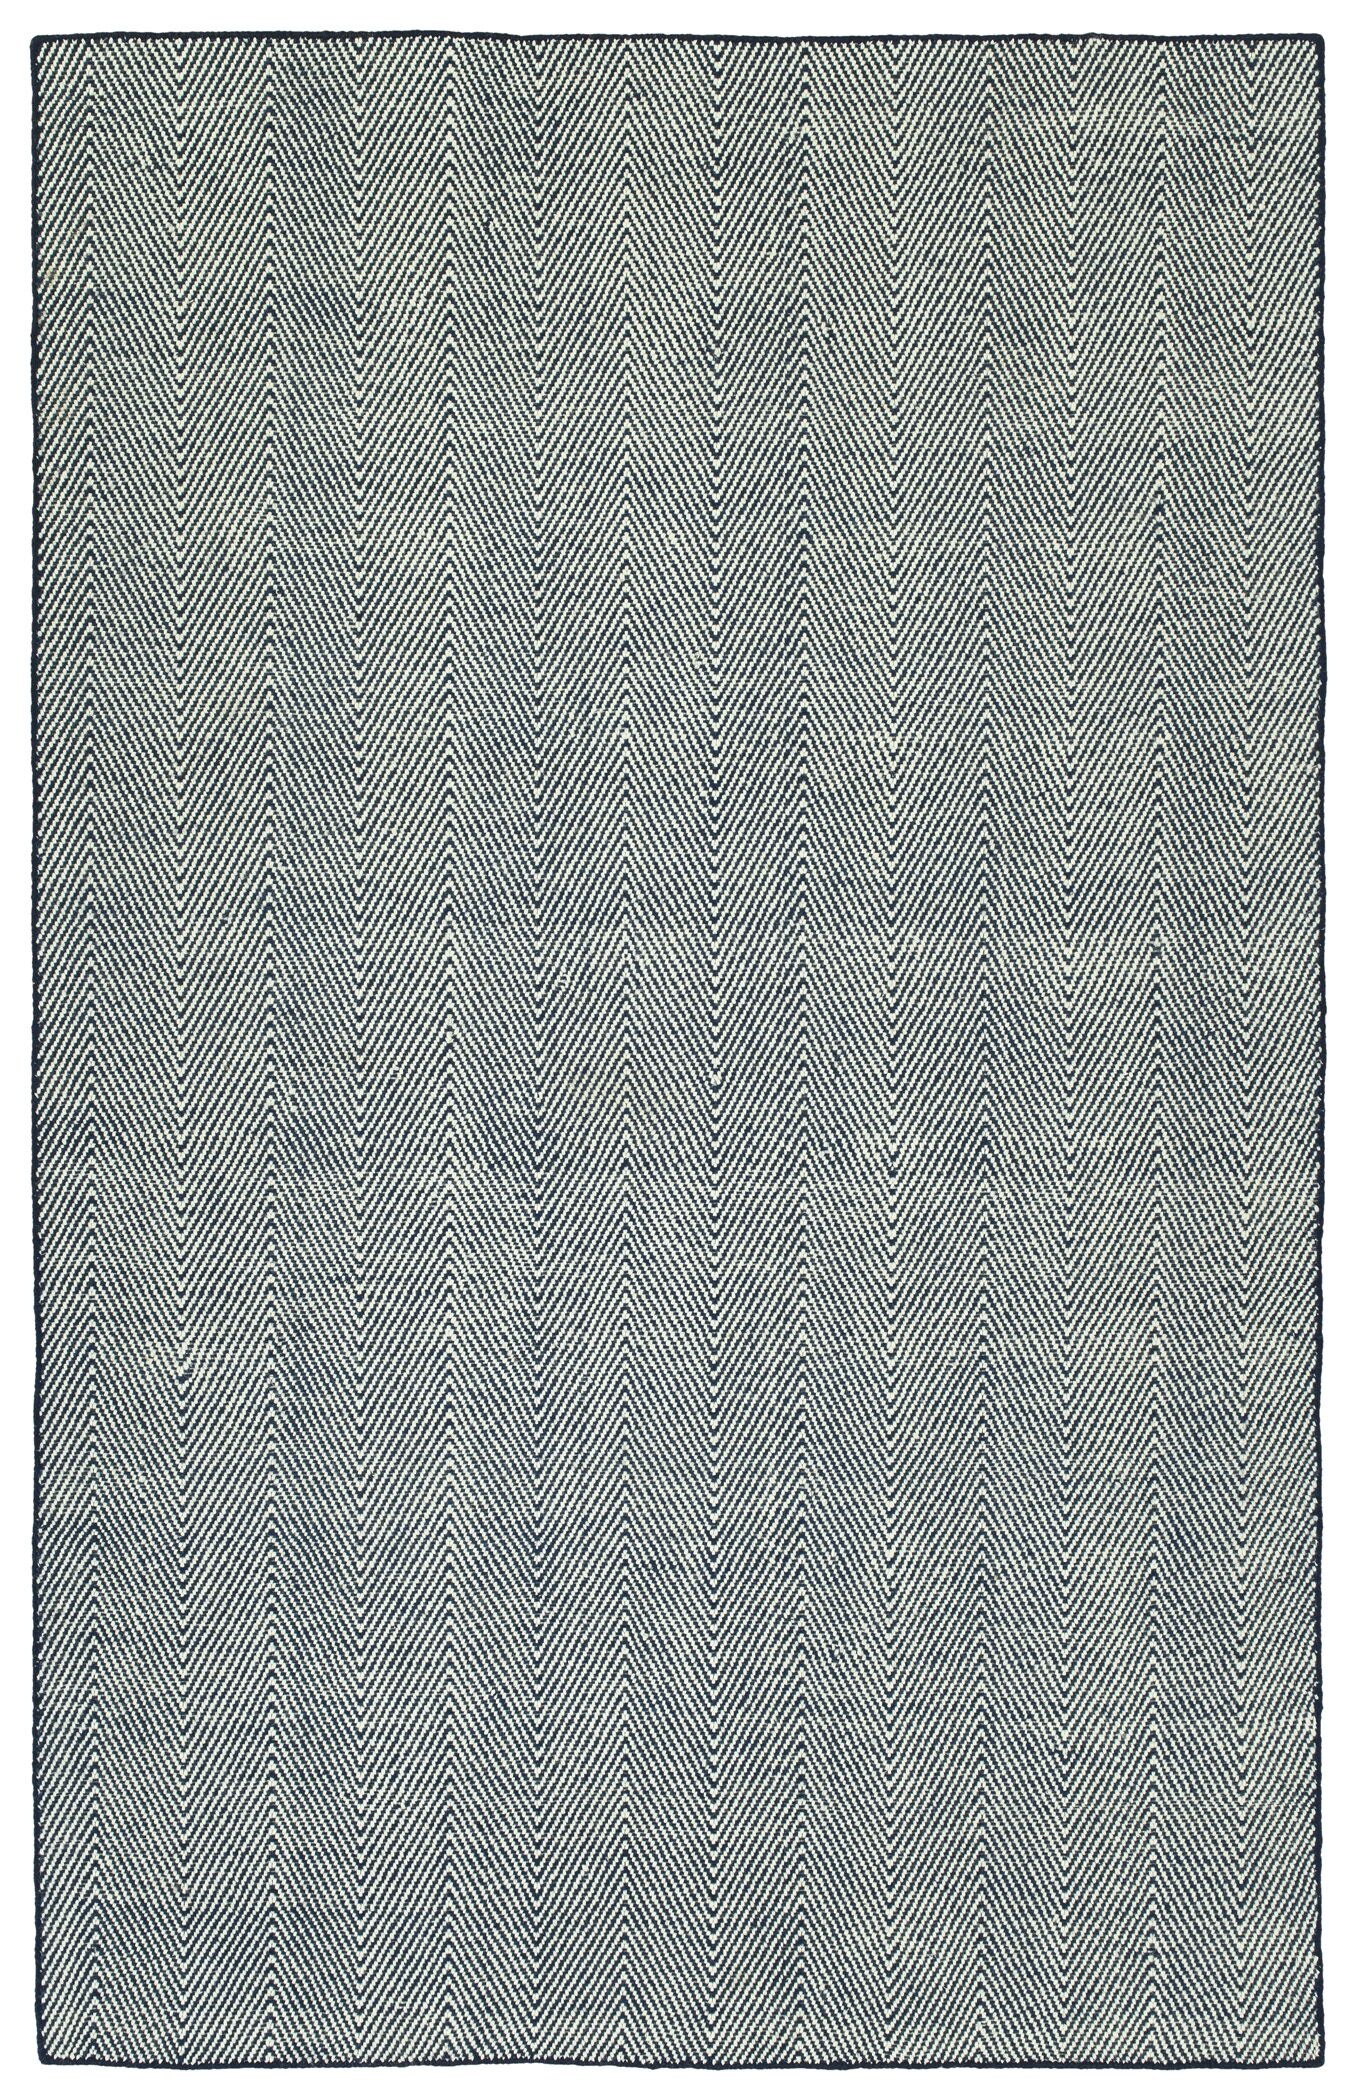 Buell Hand Woven Navy Indoor/Outdoor Area Rug Rug Size: Rectangle 2' x 3'